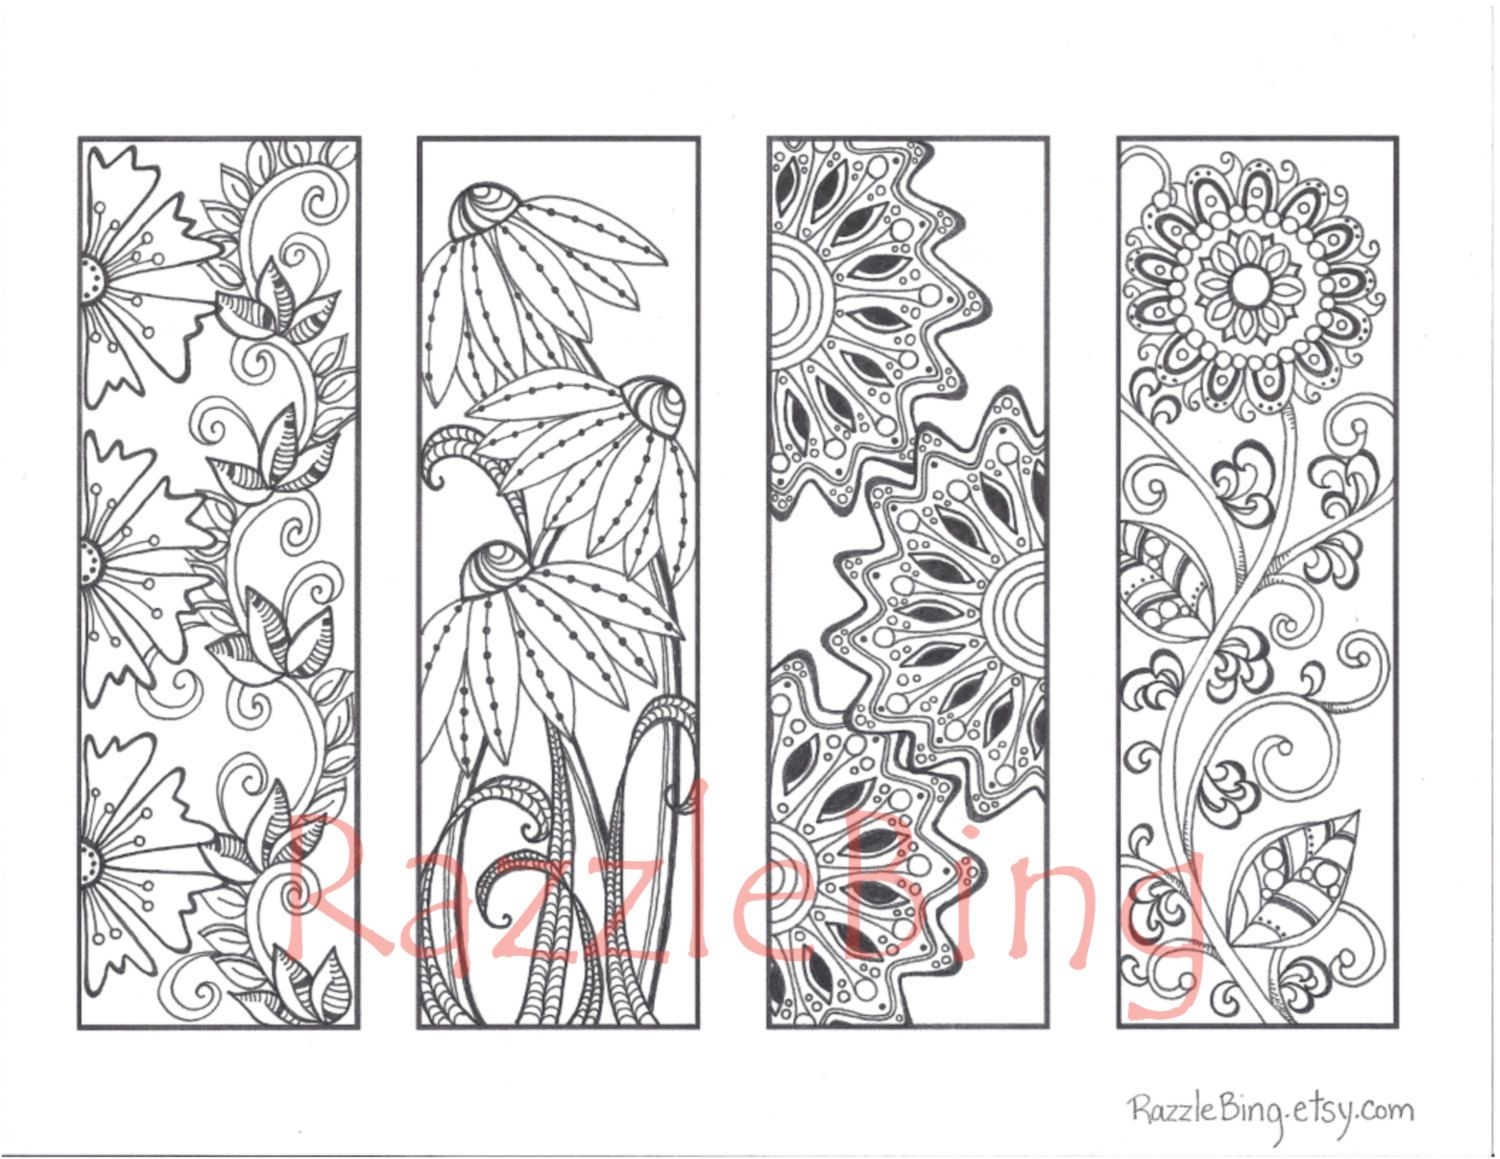 Valentine bookmark to color - Diy Bookmark Printable Coloring Page Zentangle Inspired Spring Flowers Zendoodle Doodle Pdf Instant Download